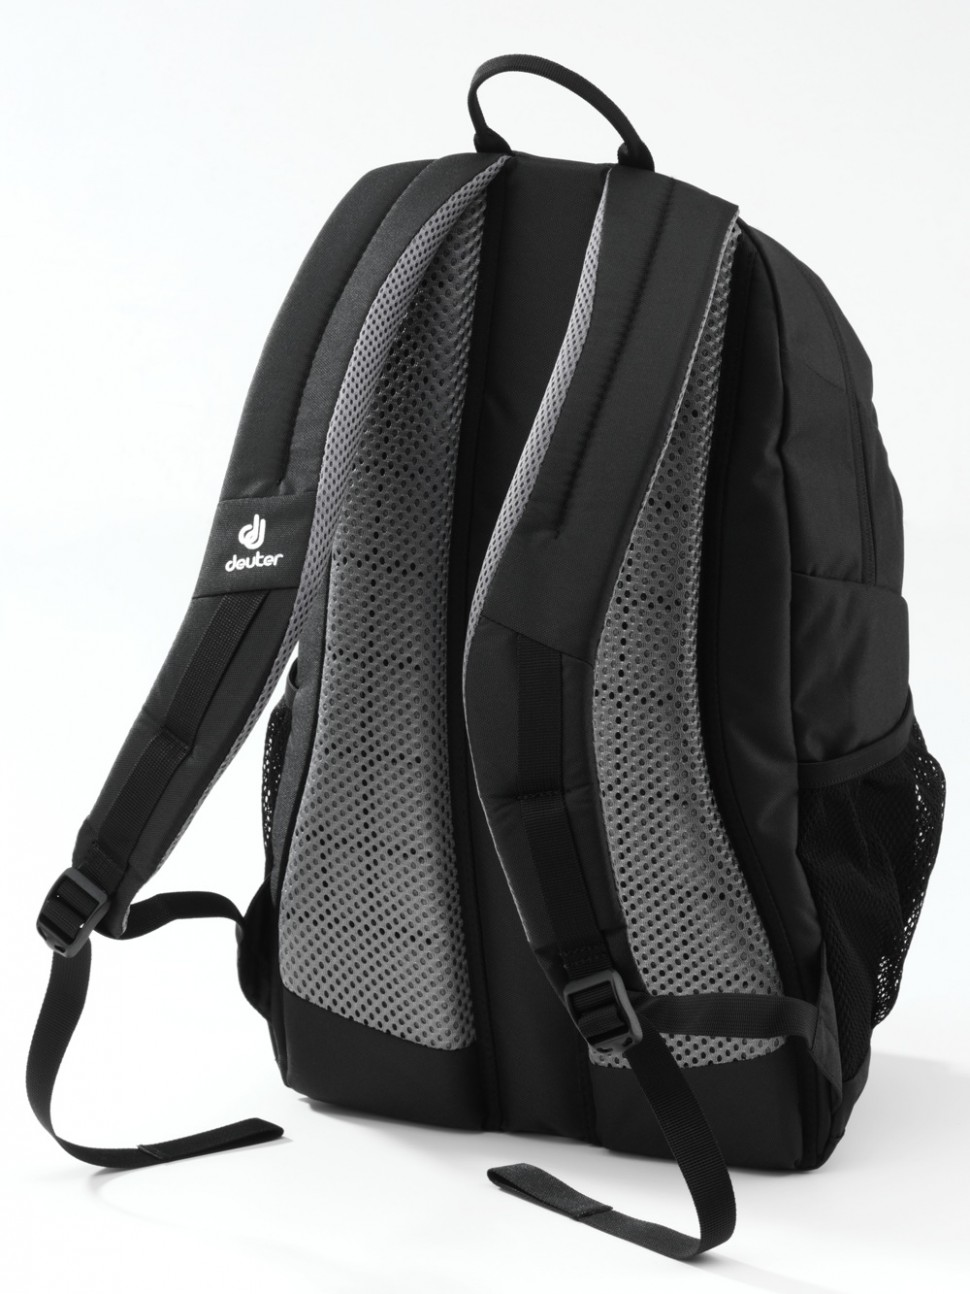 Mercedes benz deuter rucksack backpack b66951121 genuine for Mercedes benz backpack